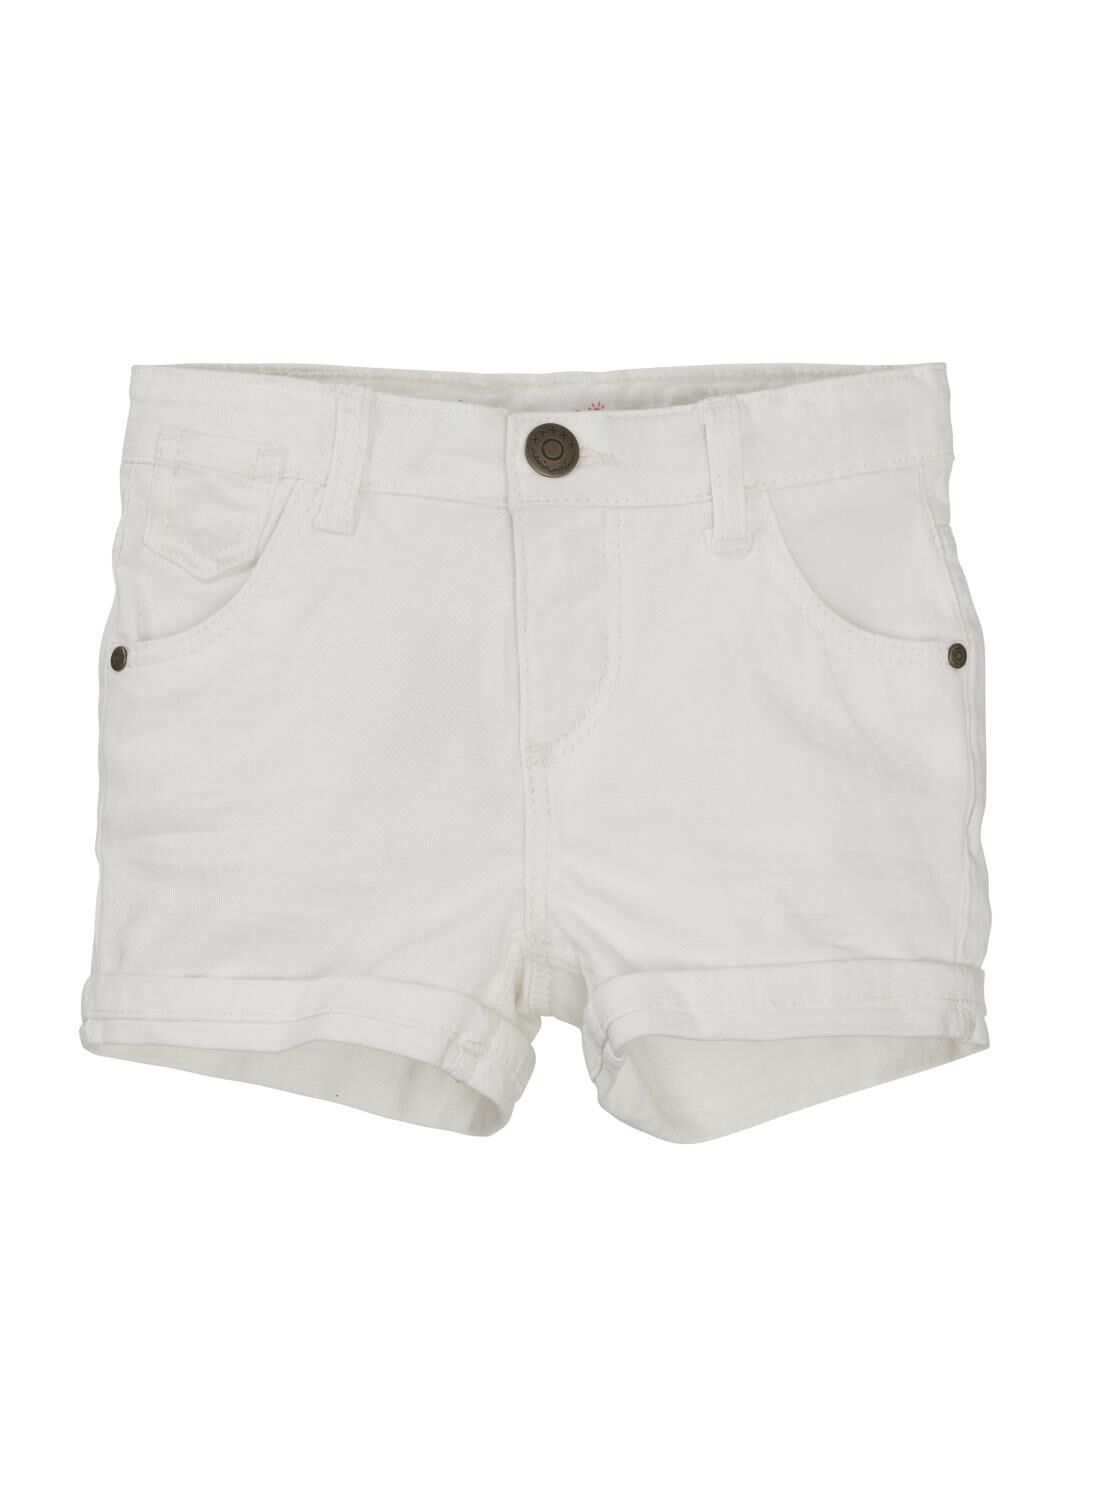 HEMA Kinder Skinny Short Wit (wit)